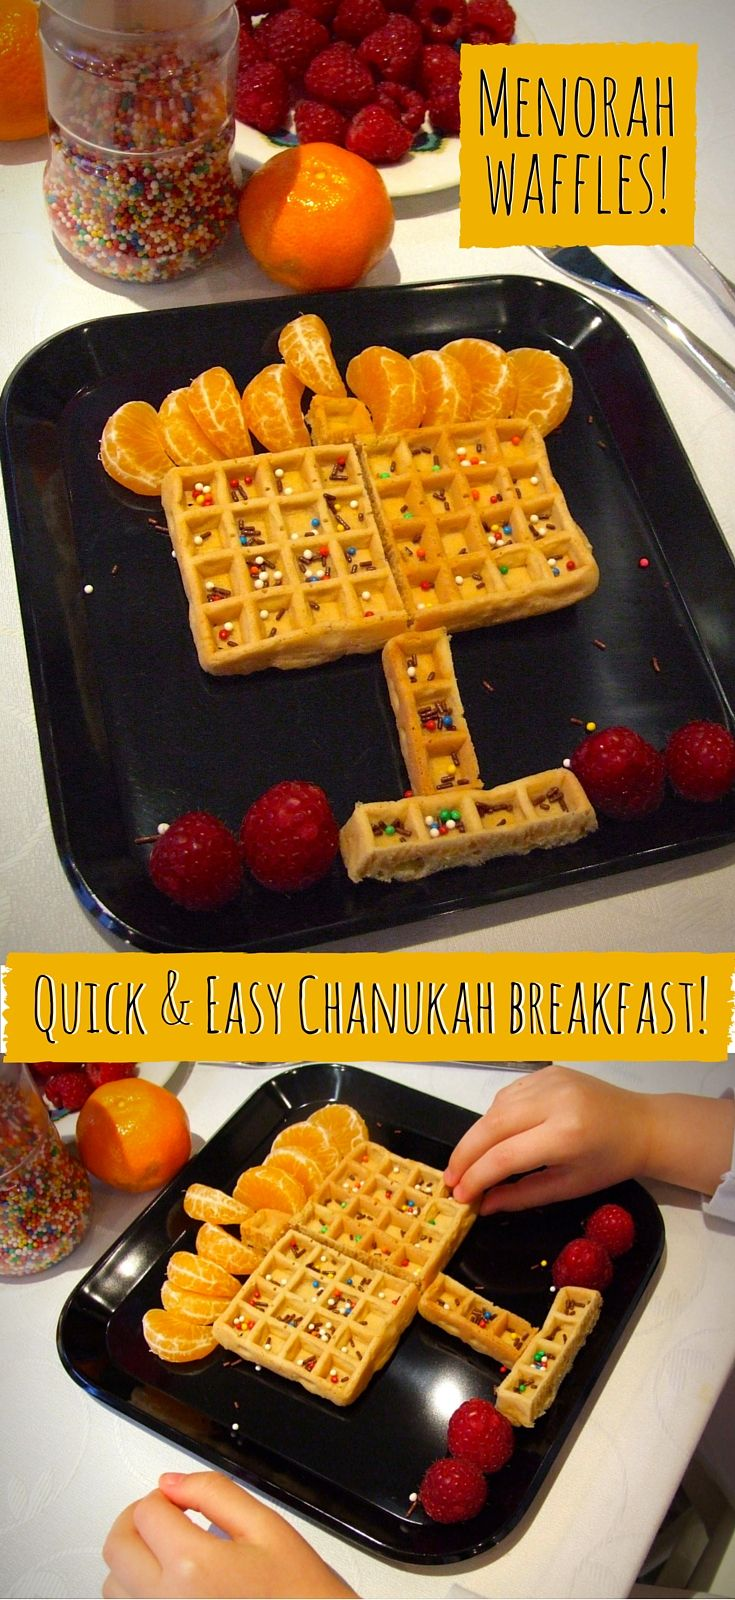 You can assemble these quick & easy Menorah waffles in moments for a special Chanukah breakfast!